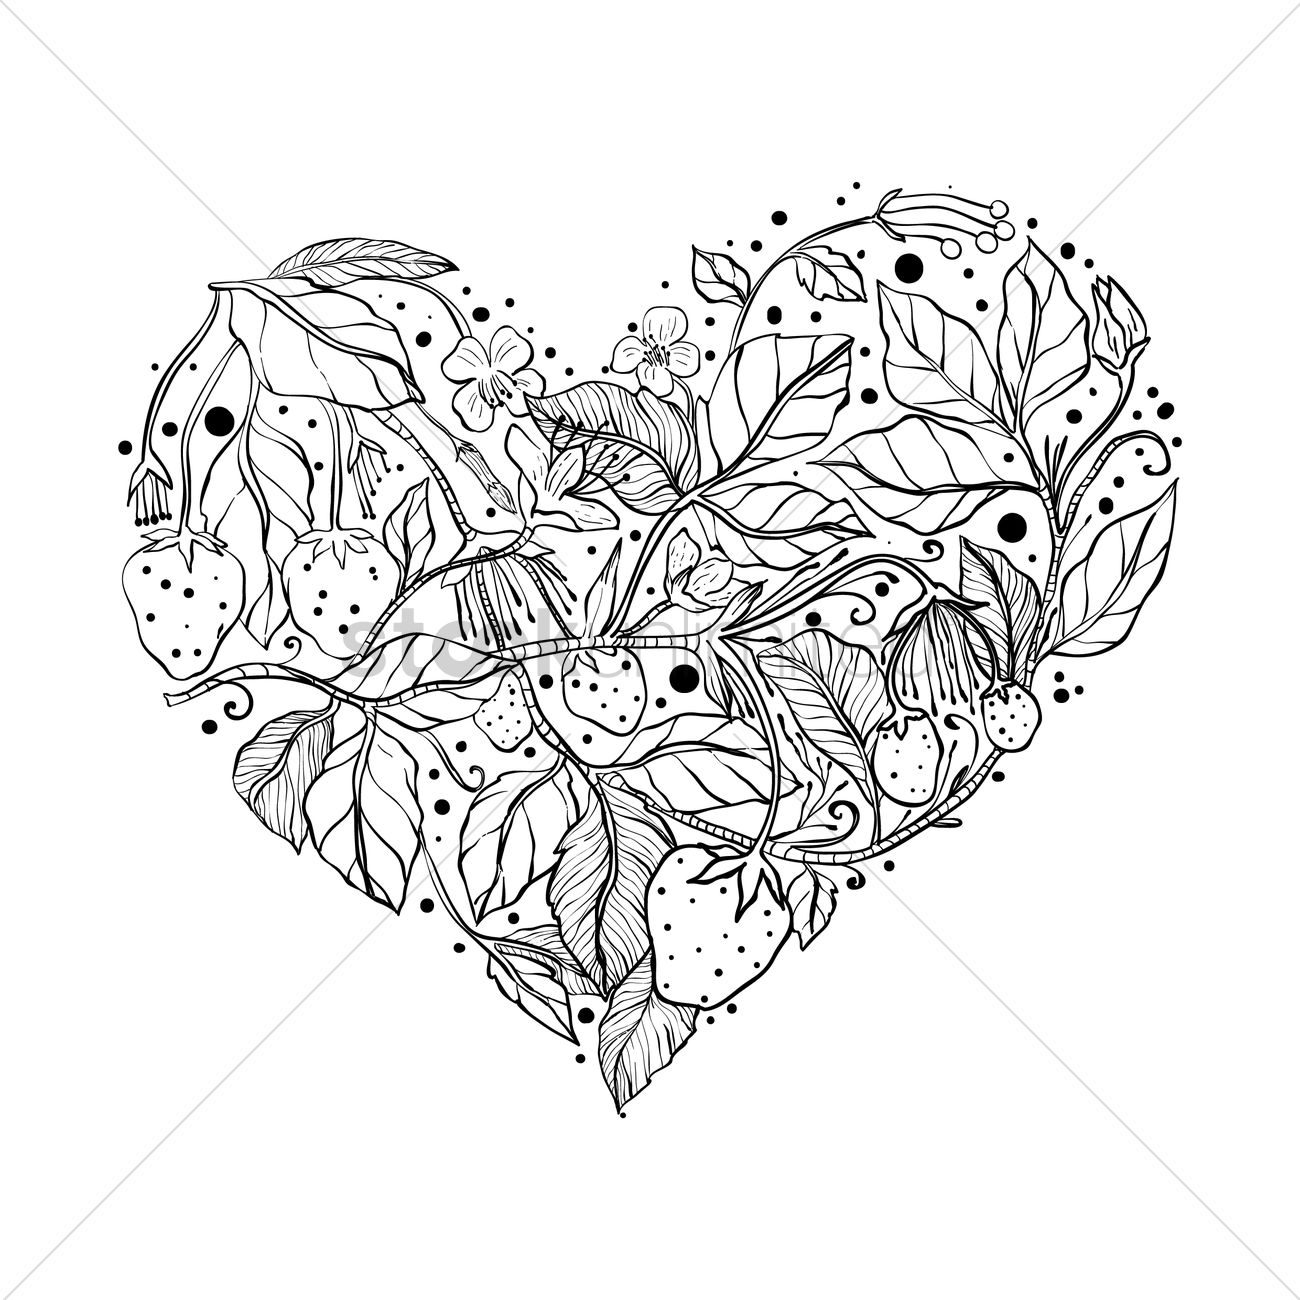 Intricate Heart Design Vector Image 1998429 Stockunlimited